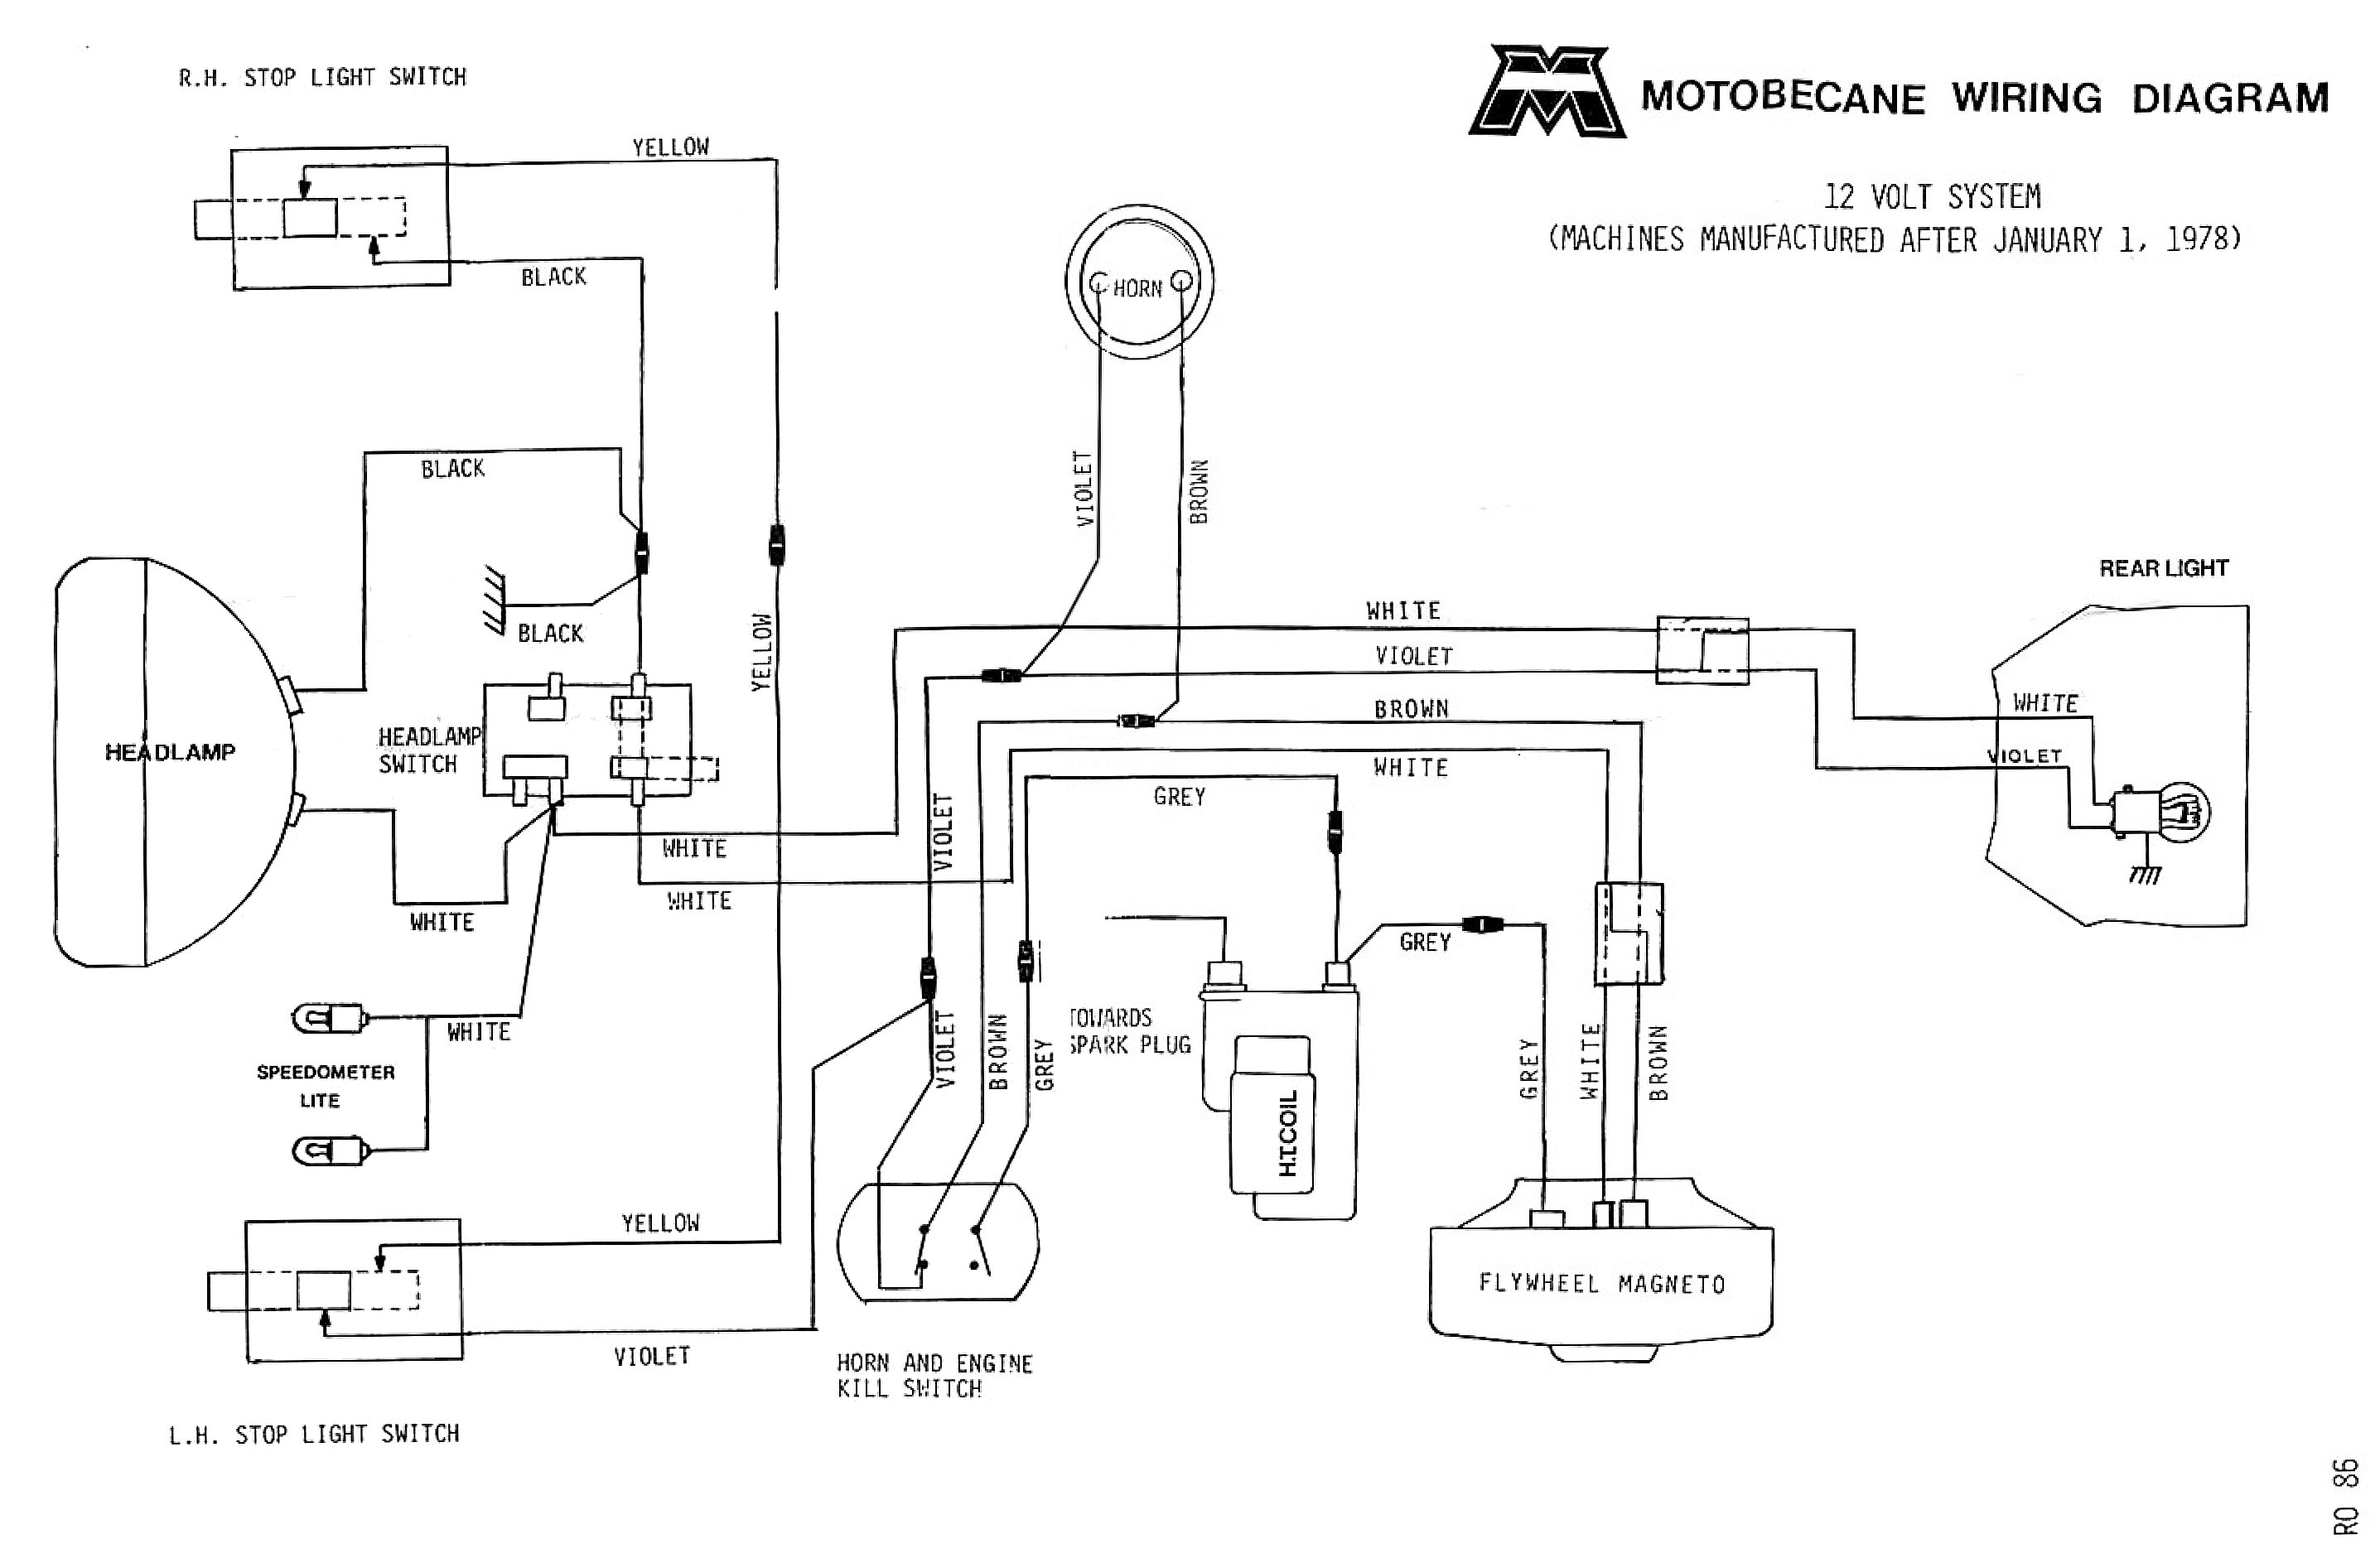 6 volt system diagram wiring diagram 8n ford tractor wiring diagram 6 volt wiring diagrams ford 640 6 volt tractor